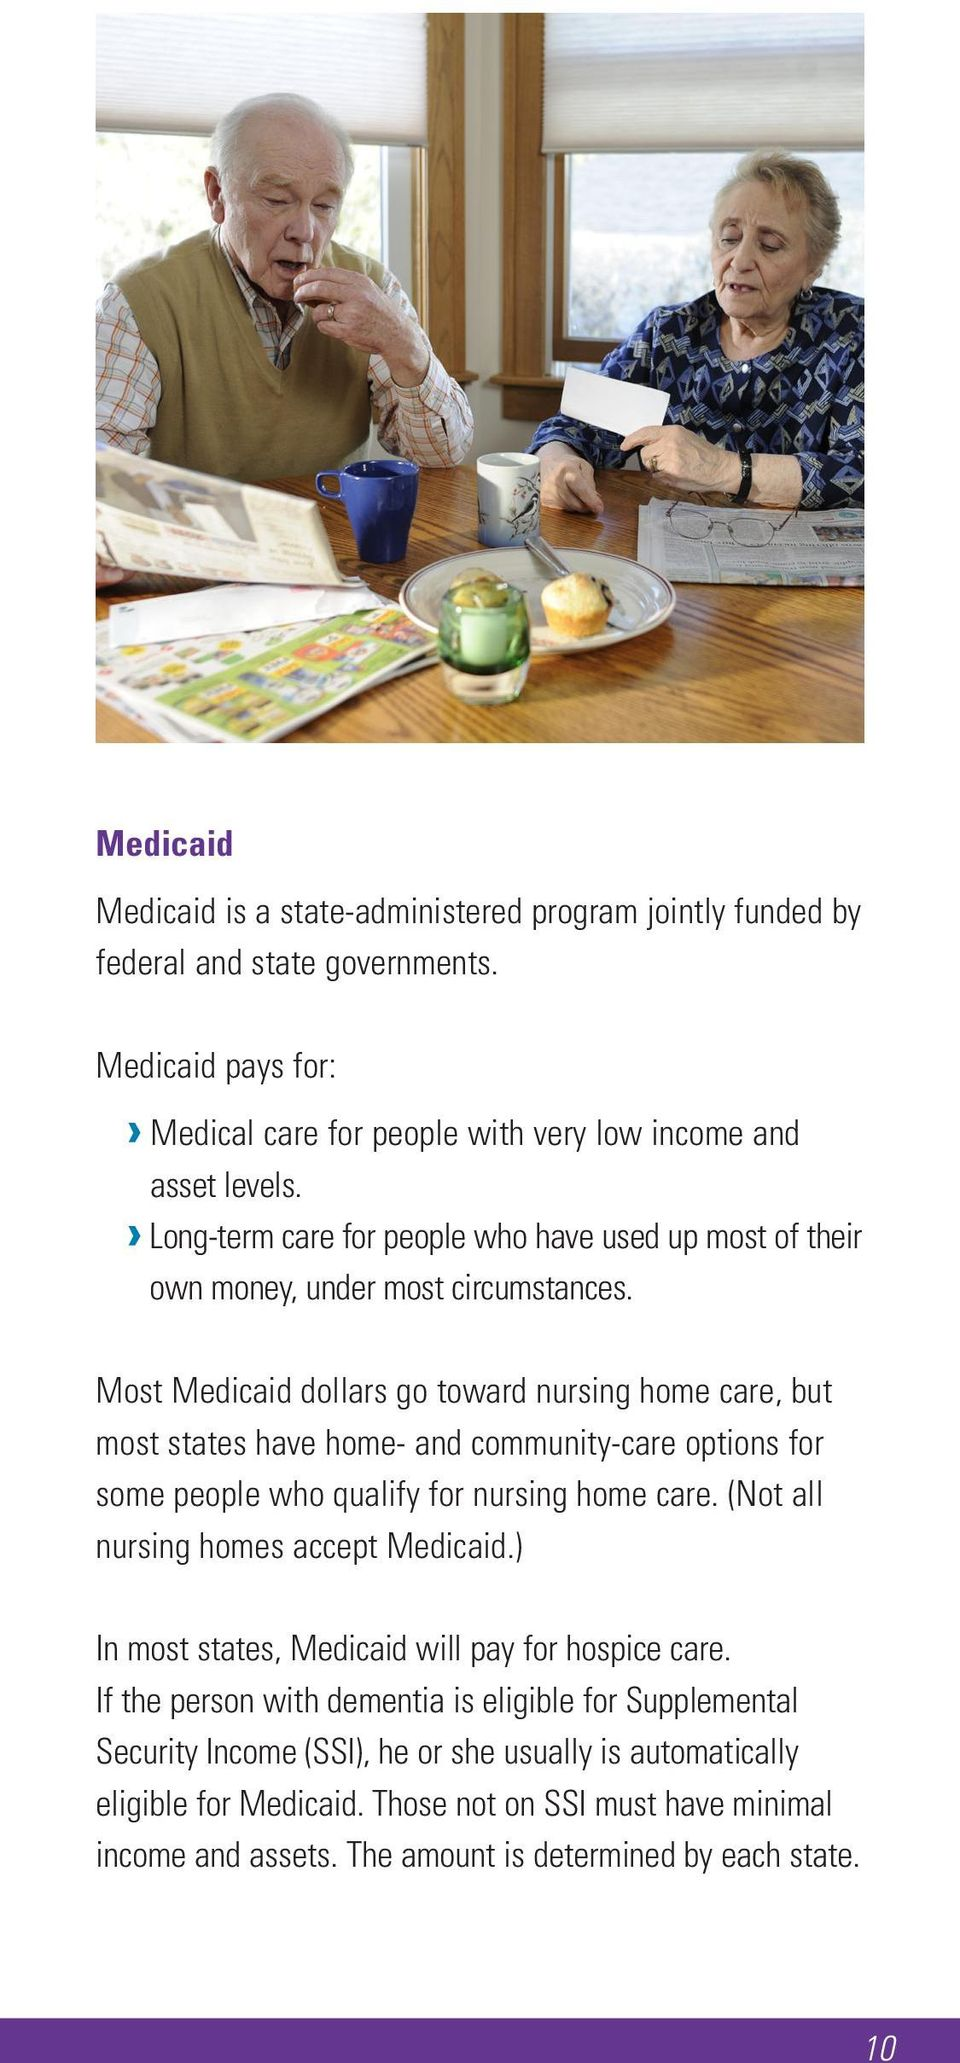 Most Medicaid dollars go toward nursing home care, but most states have home- and community-care options for some people who qualify for nursing home care.